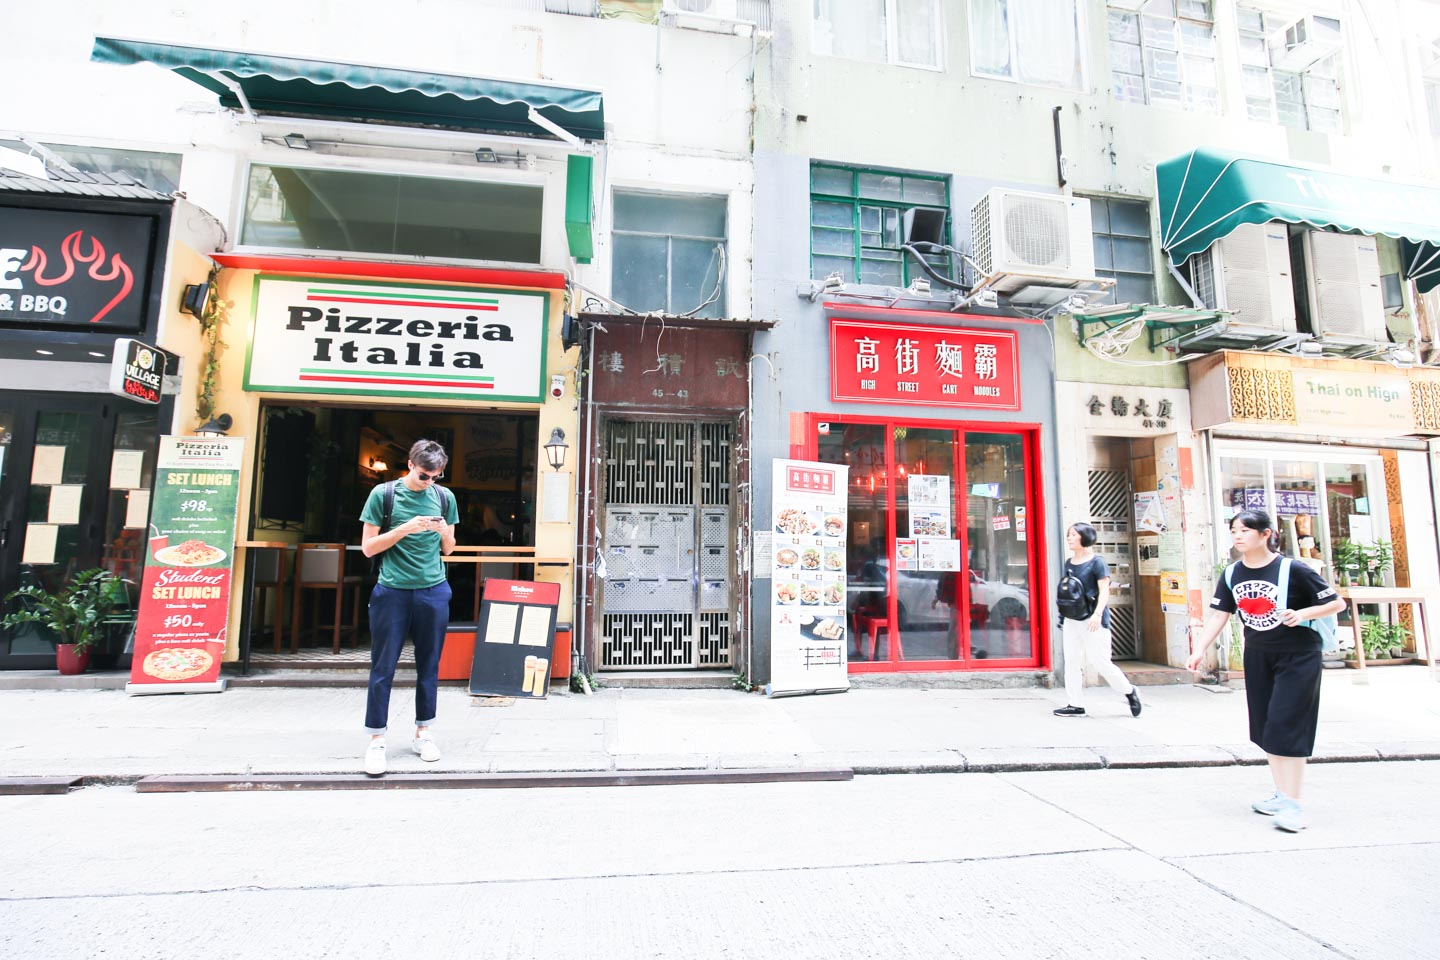 storefront guide pop up store Sai Ying Pun hong kong